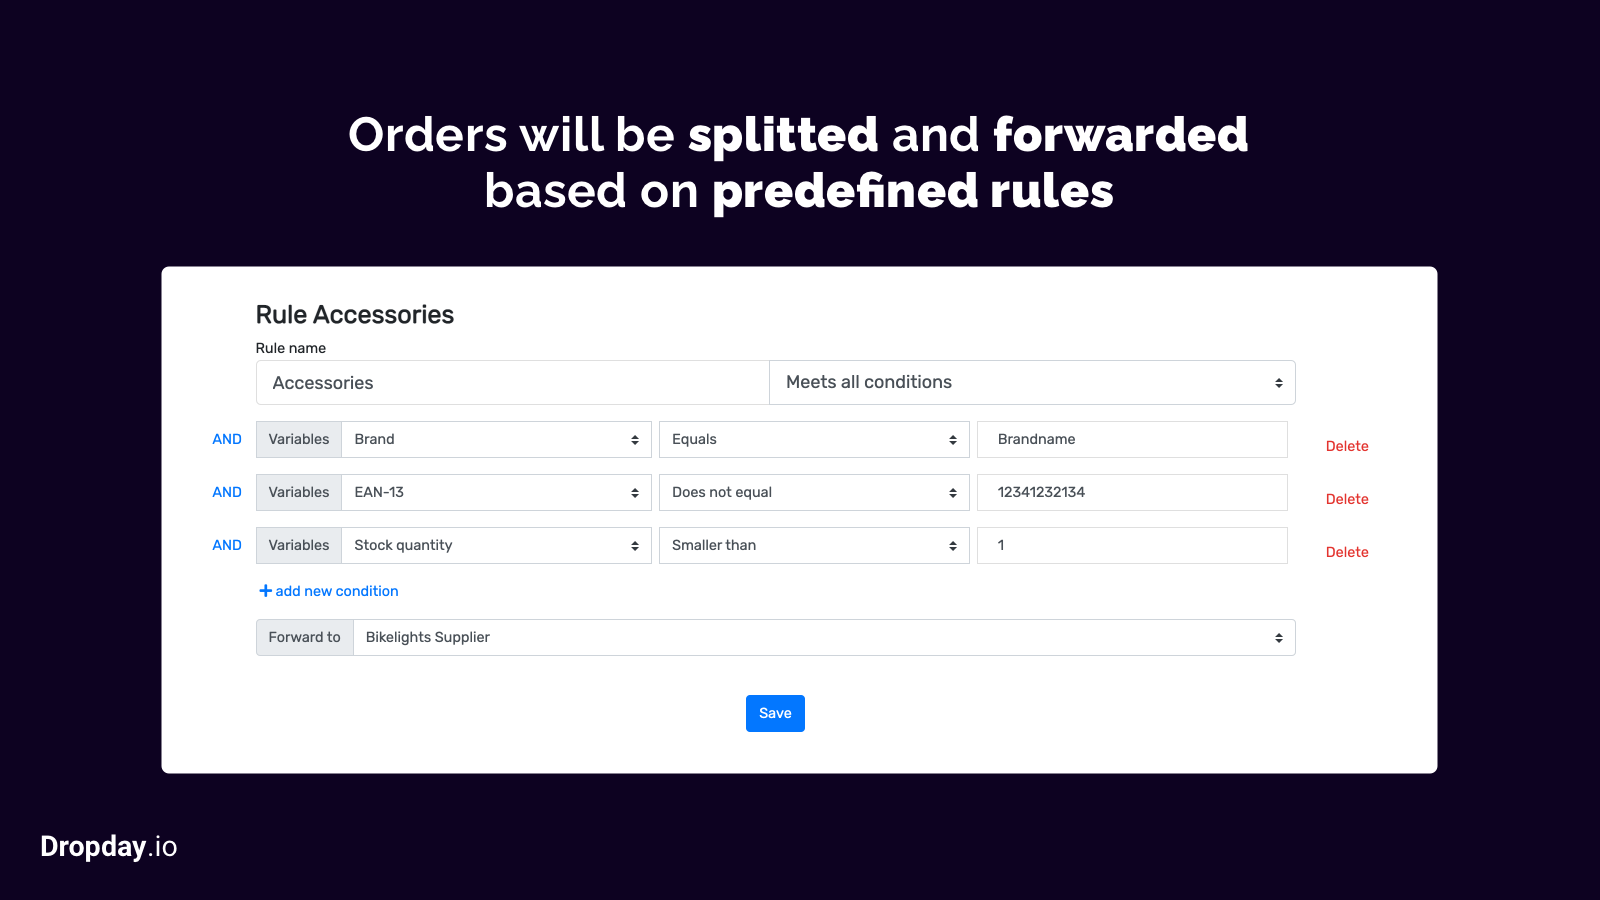 Based on rules, the orders are splitted and processed.